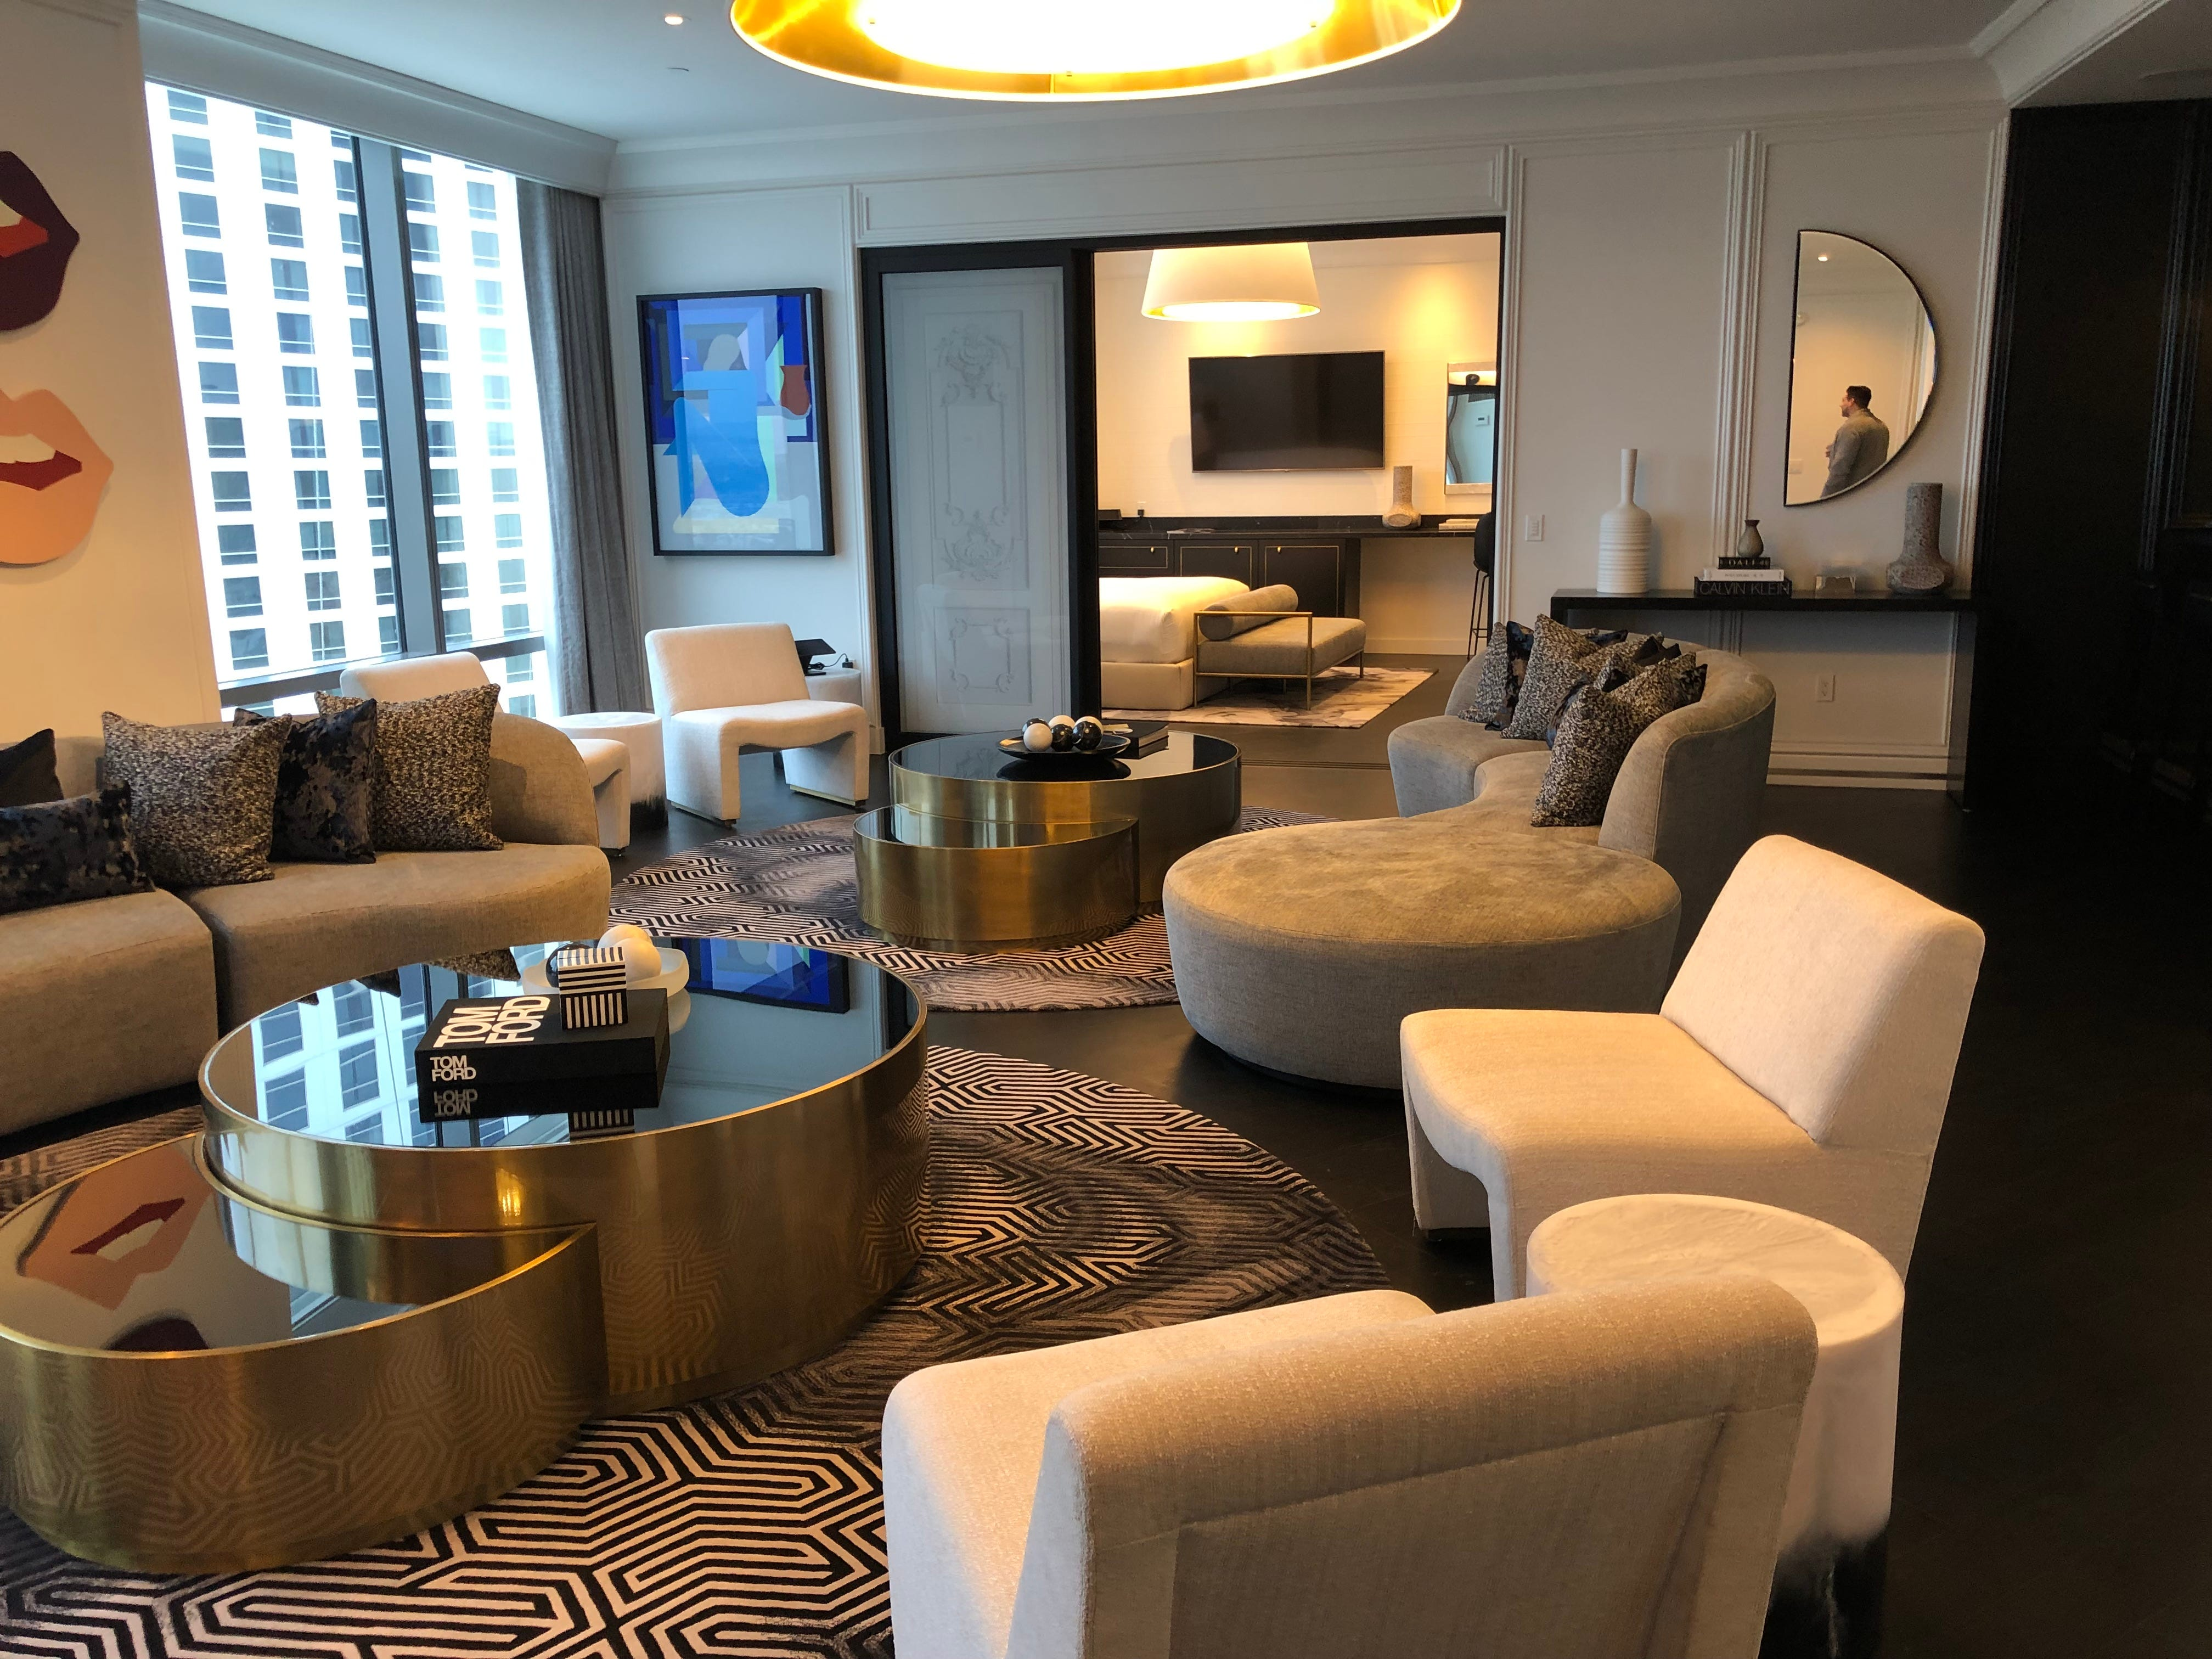 The living room of a suite at the Palms Casino Resort in Las Vegas.